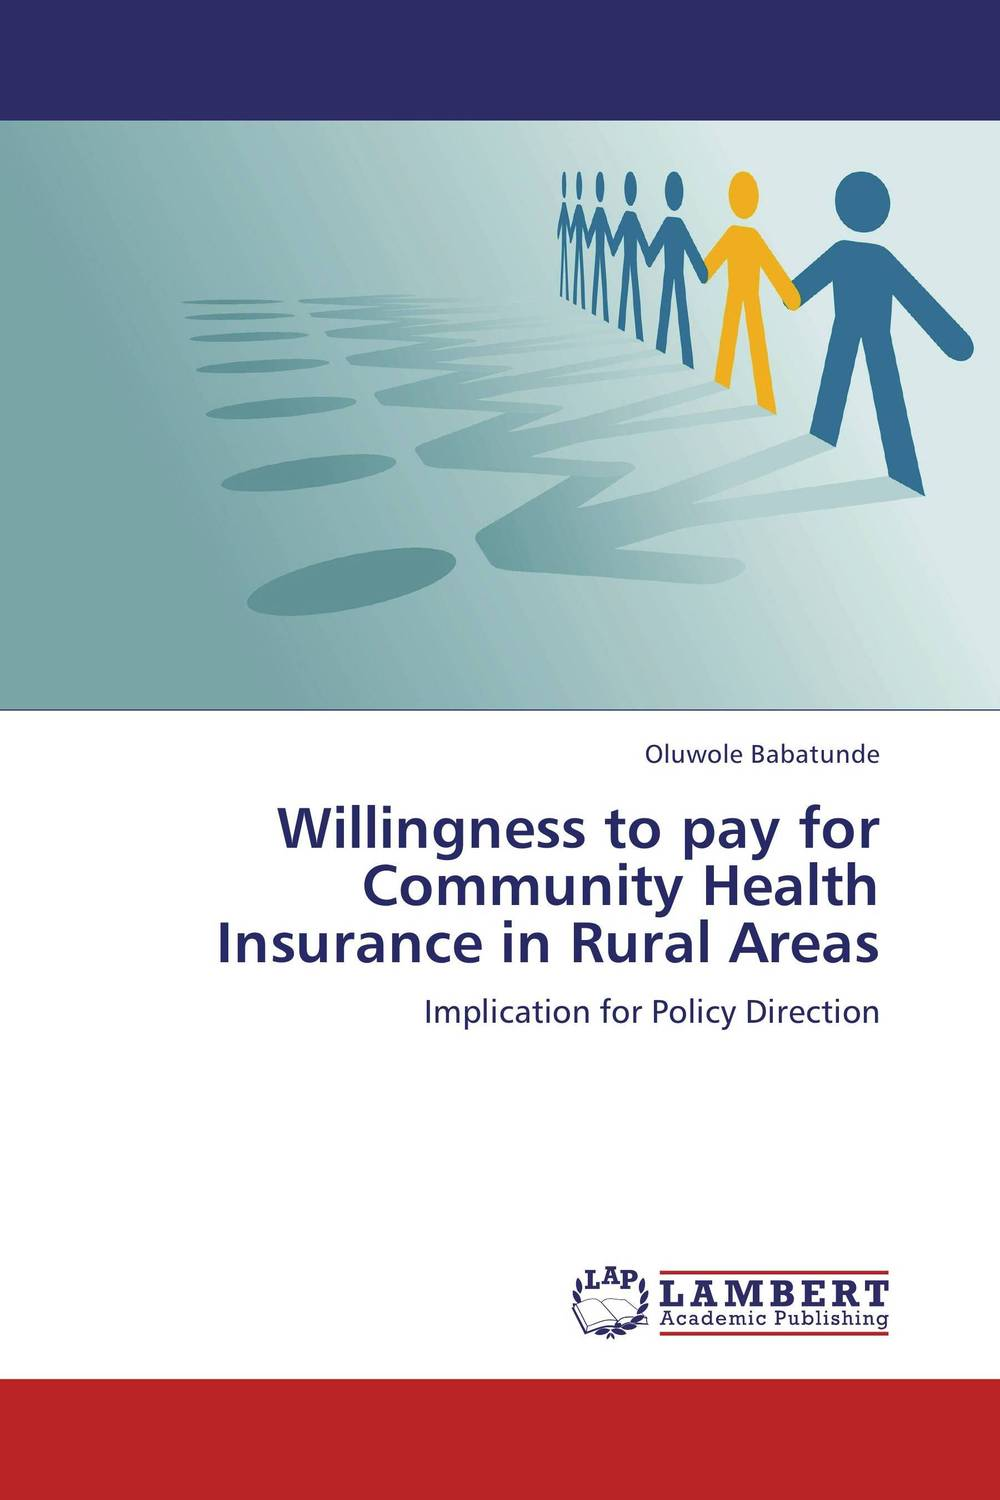 Willingness to pay for Community Health Insurance in Rural Areas